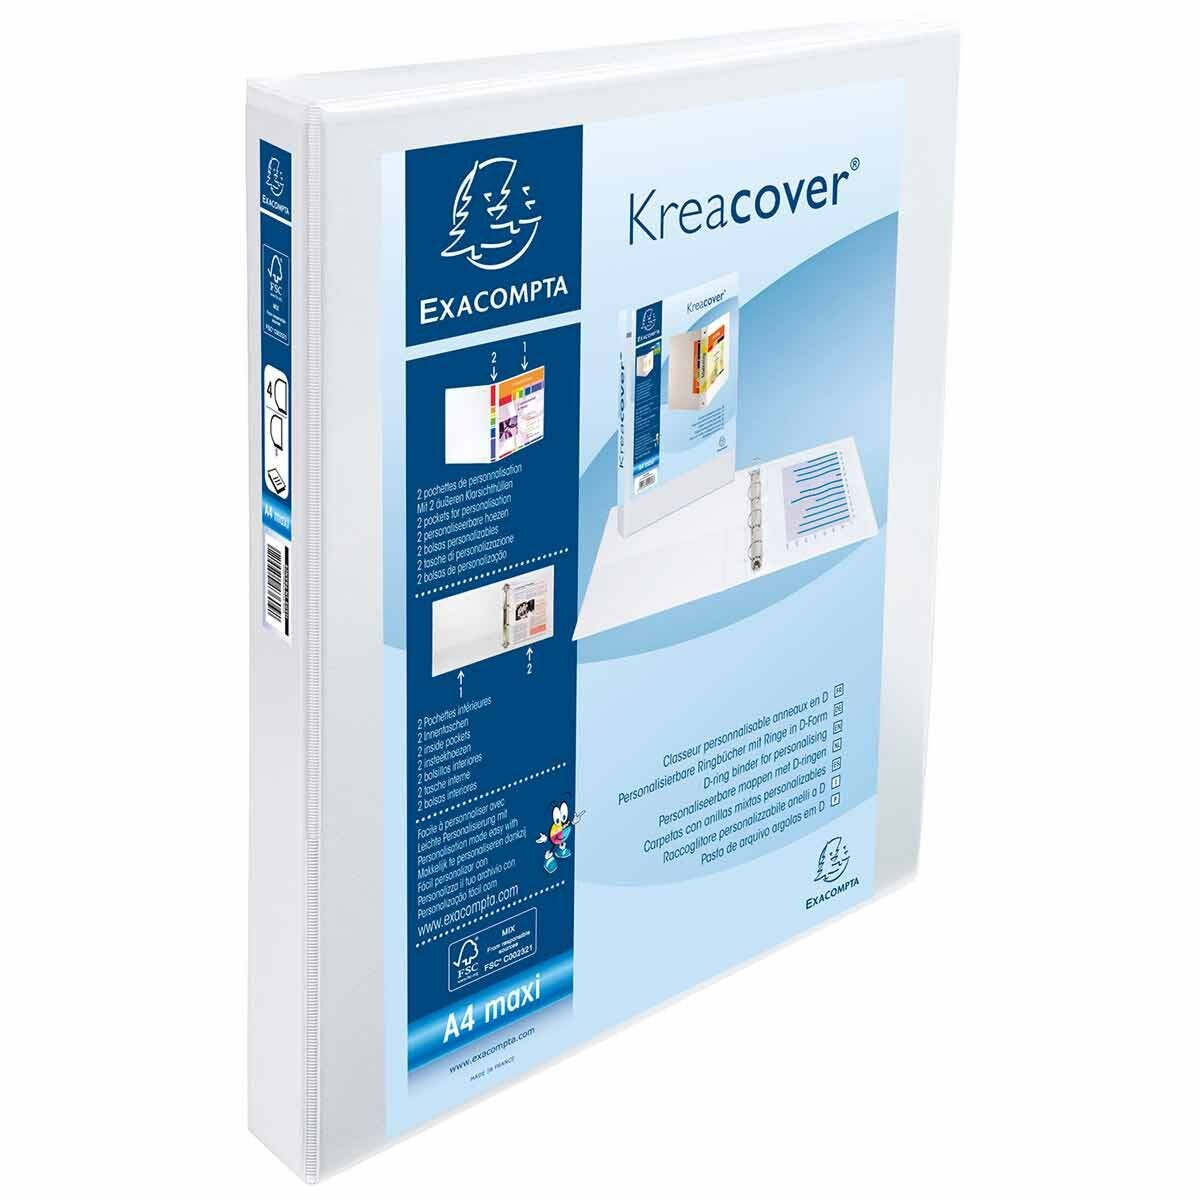 Exacompta Kreacover Personal Ring Binder A4 Plus 4 Rings 30mm 2 Pockets Pack of 10 White